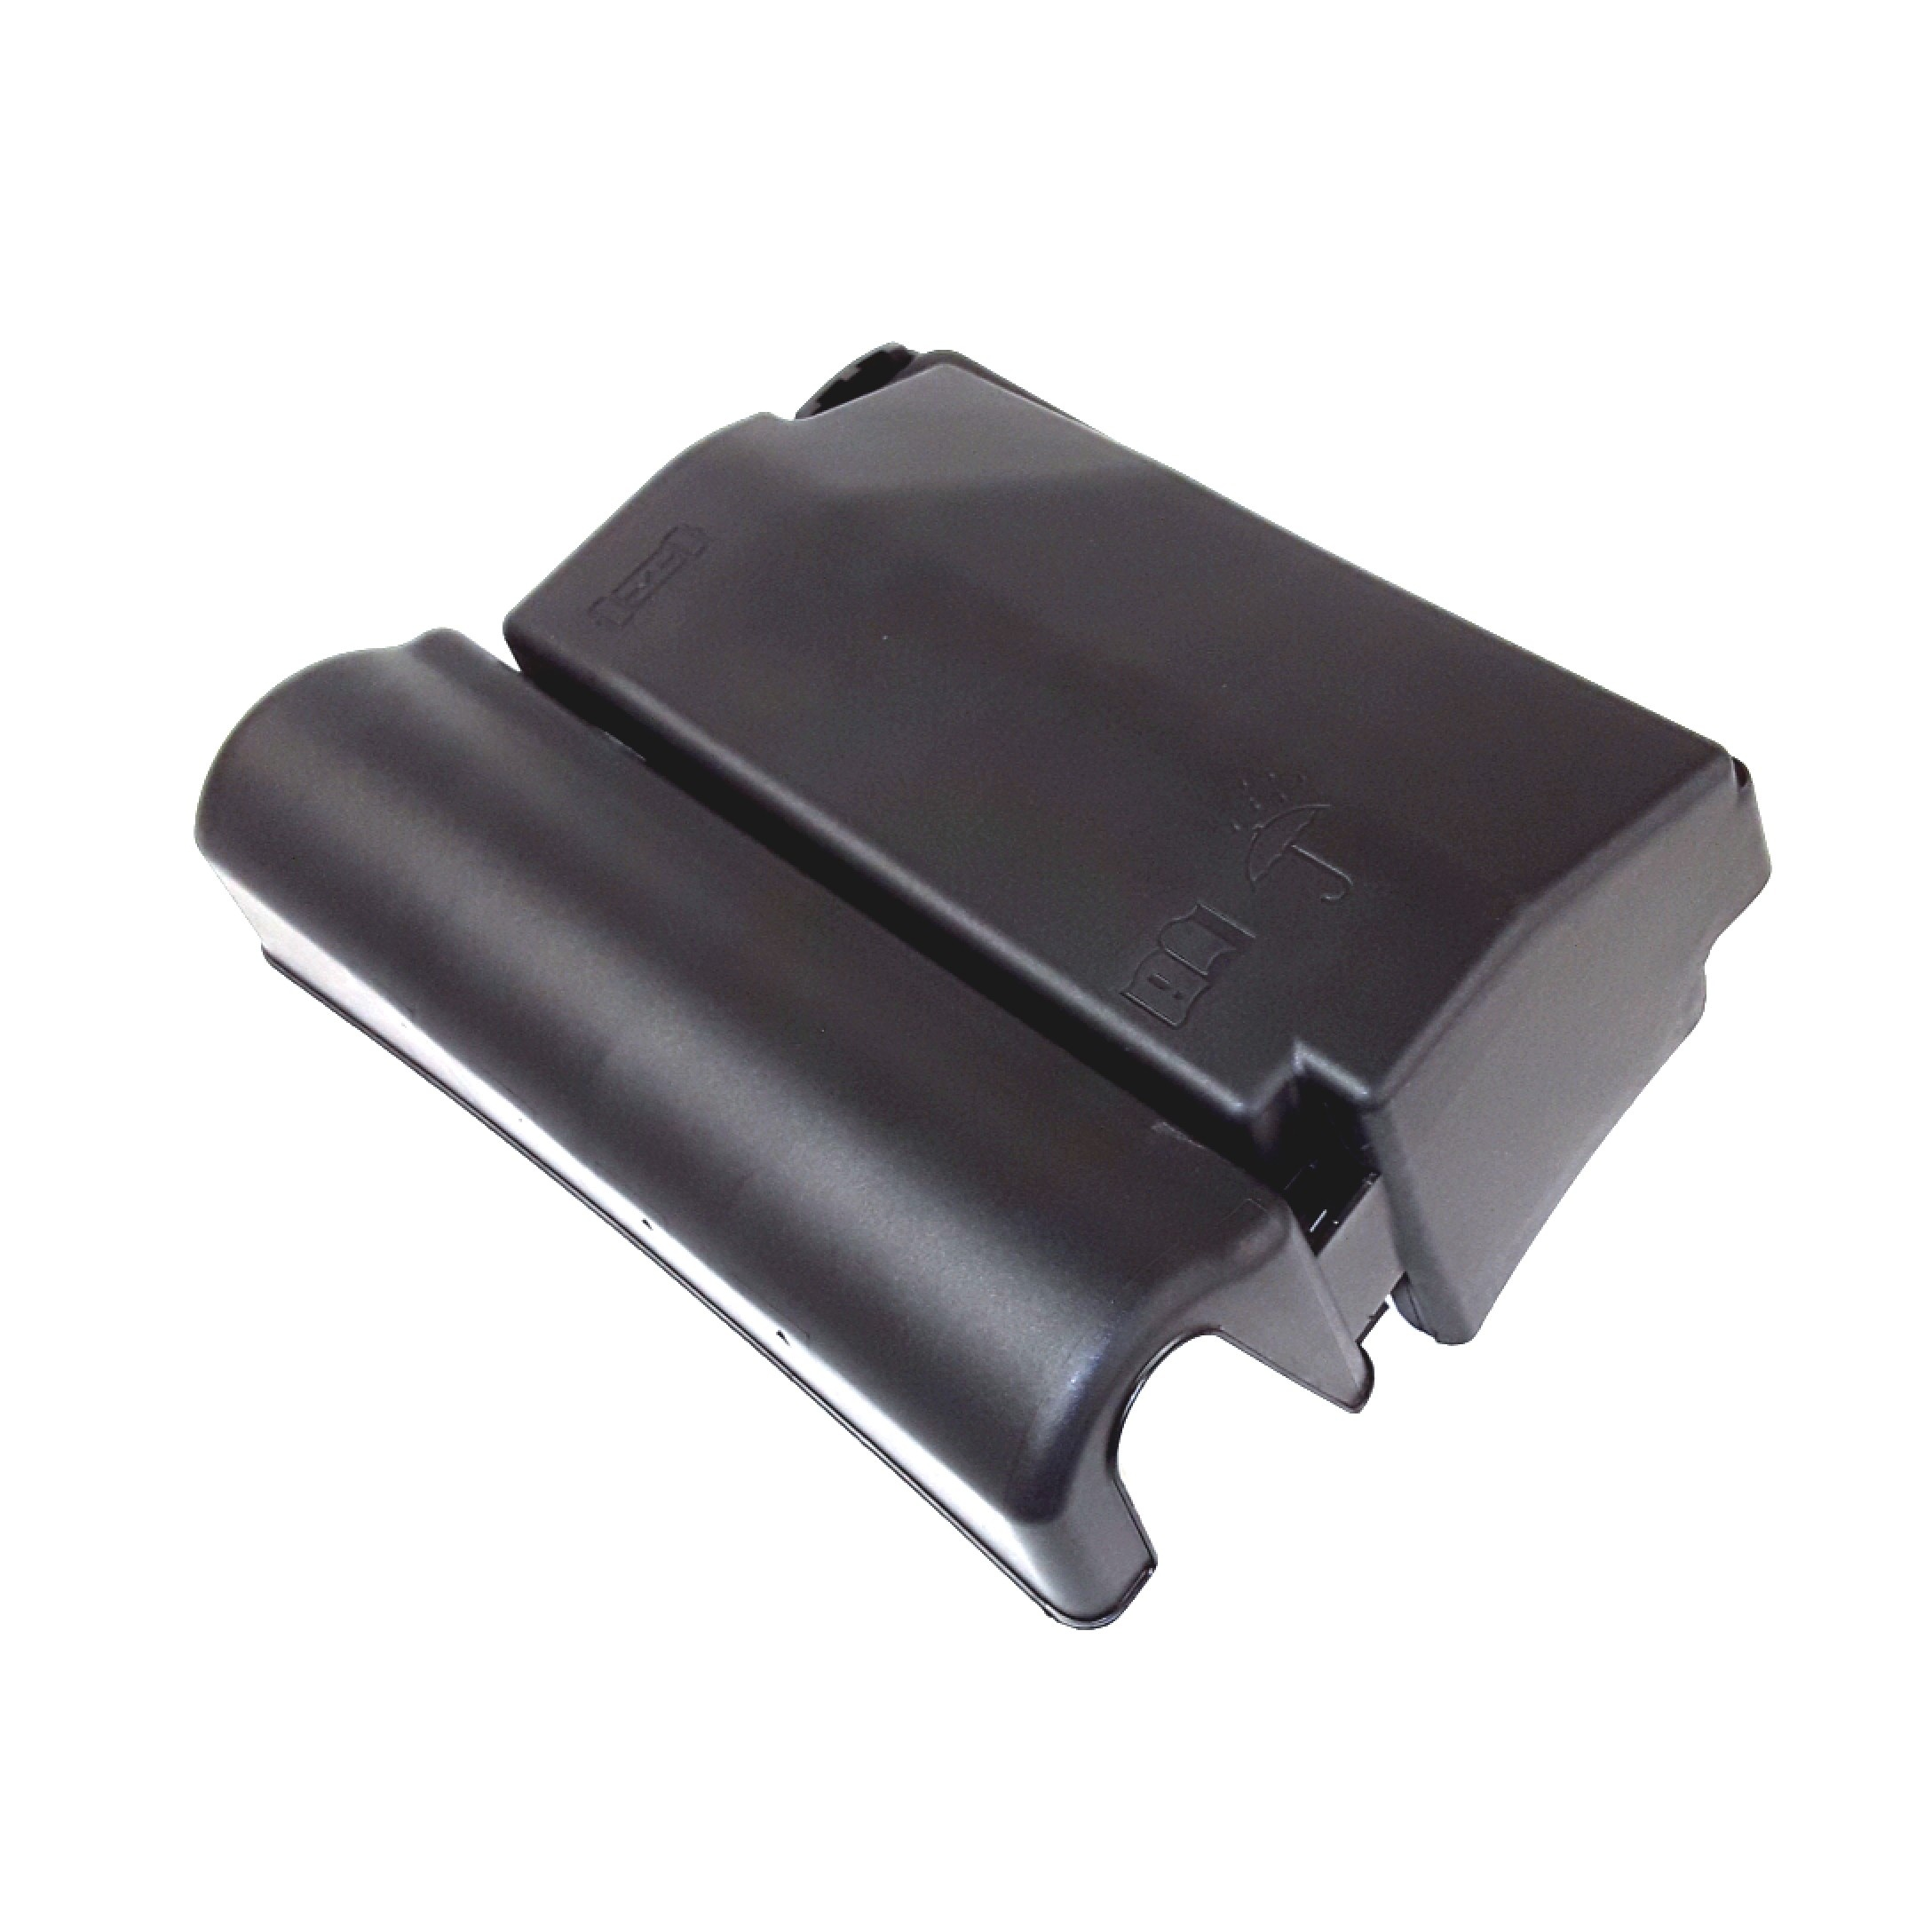 2013 Volkswagen Beetle Fuse Box Cover. W/o 1.8 & 2.0 turbo ...